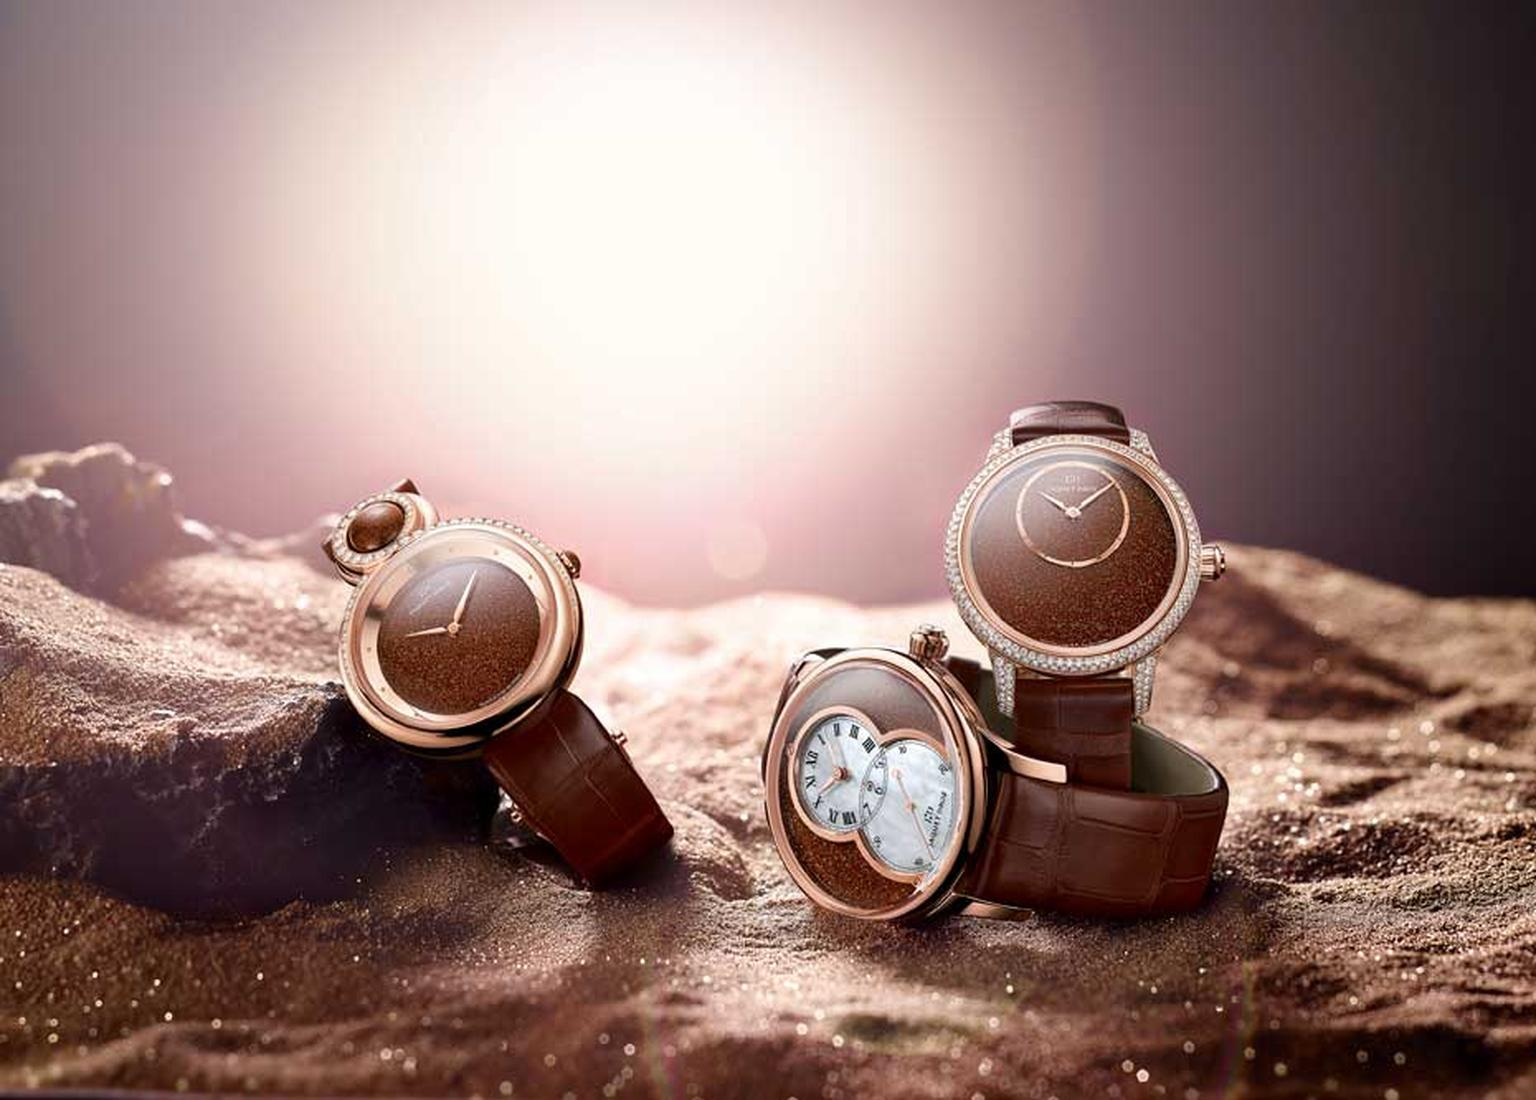 Jaquet Droz Sunstone dial watches for 2015. The beautiful gold-speckled Sunstone gets its romantic name from its spangled and glittery inclusions although its proper name is aventurine feldspar.